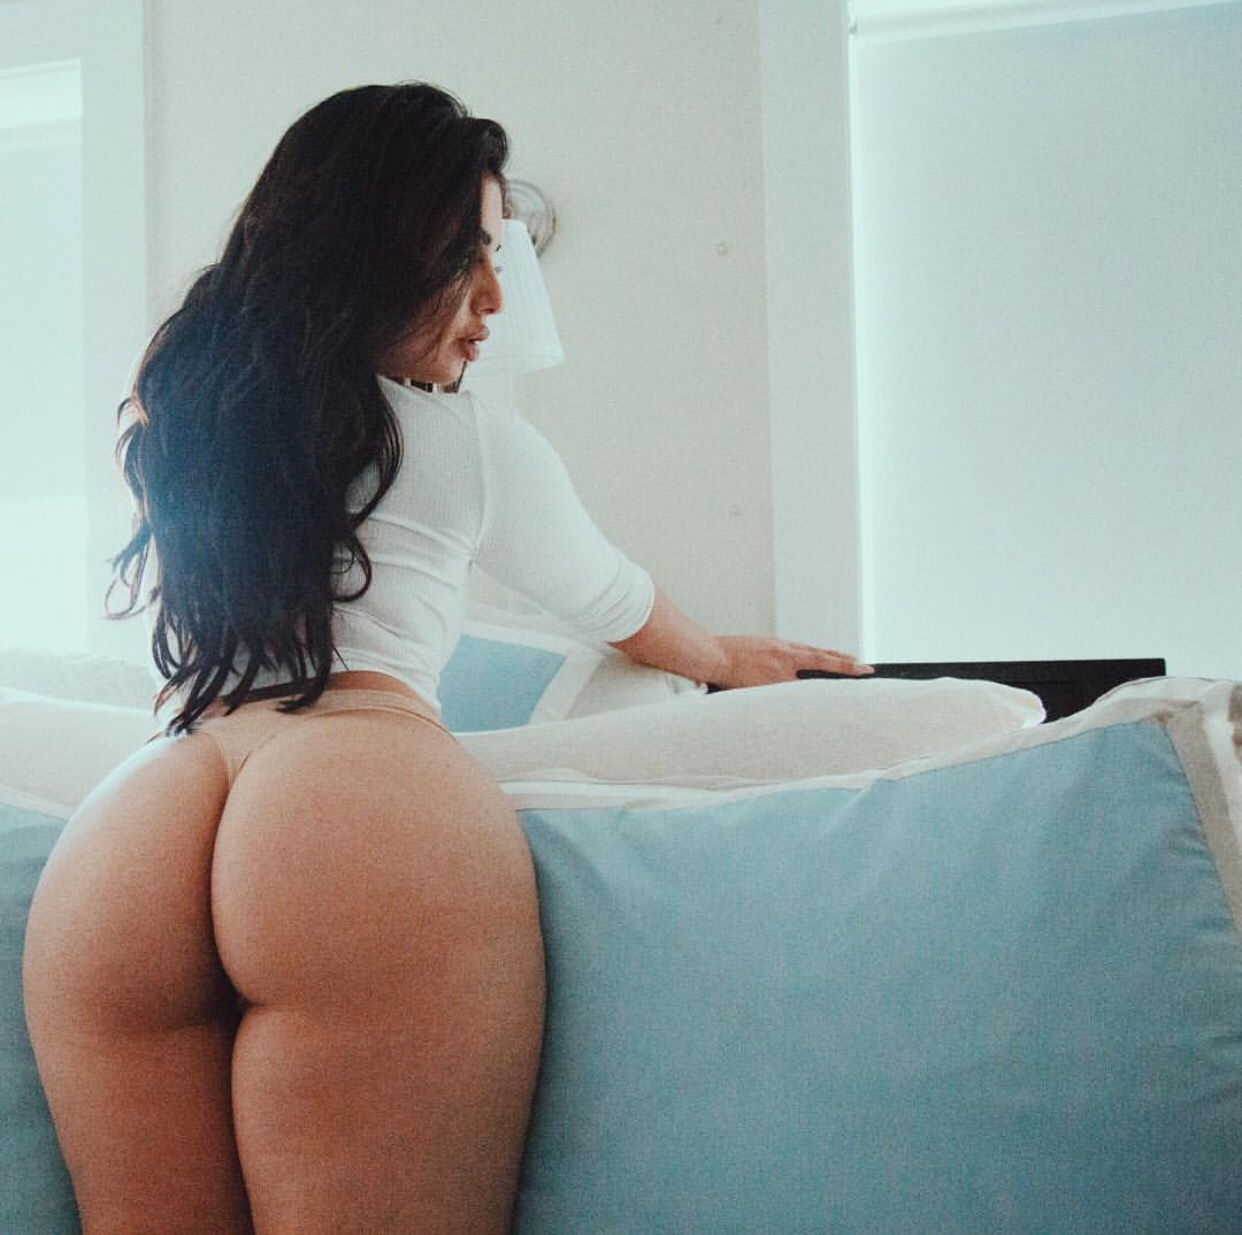 Perfect Latino Round Assomg Body In Skirt And Tiny Thong